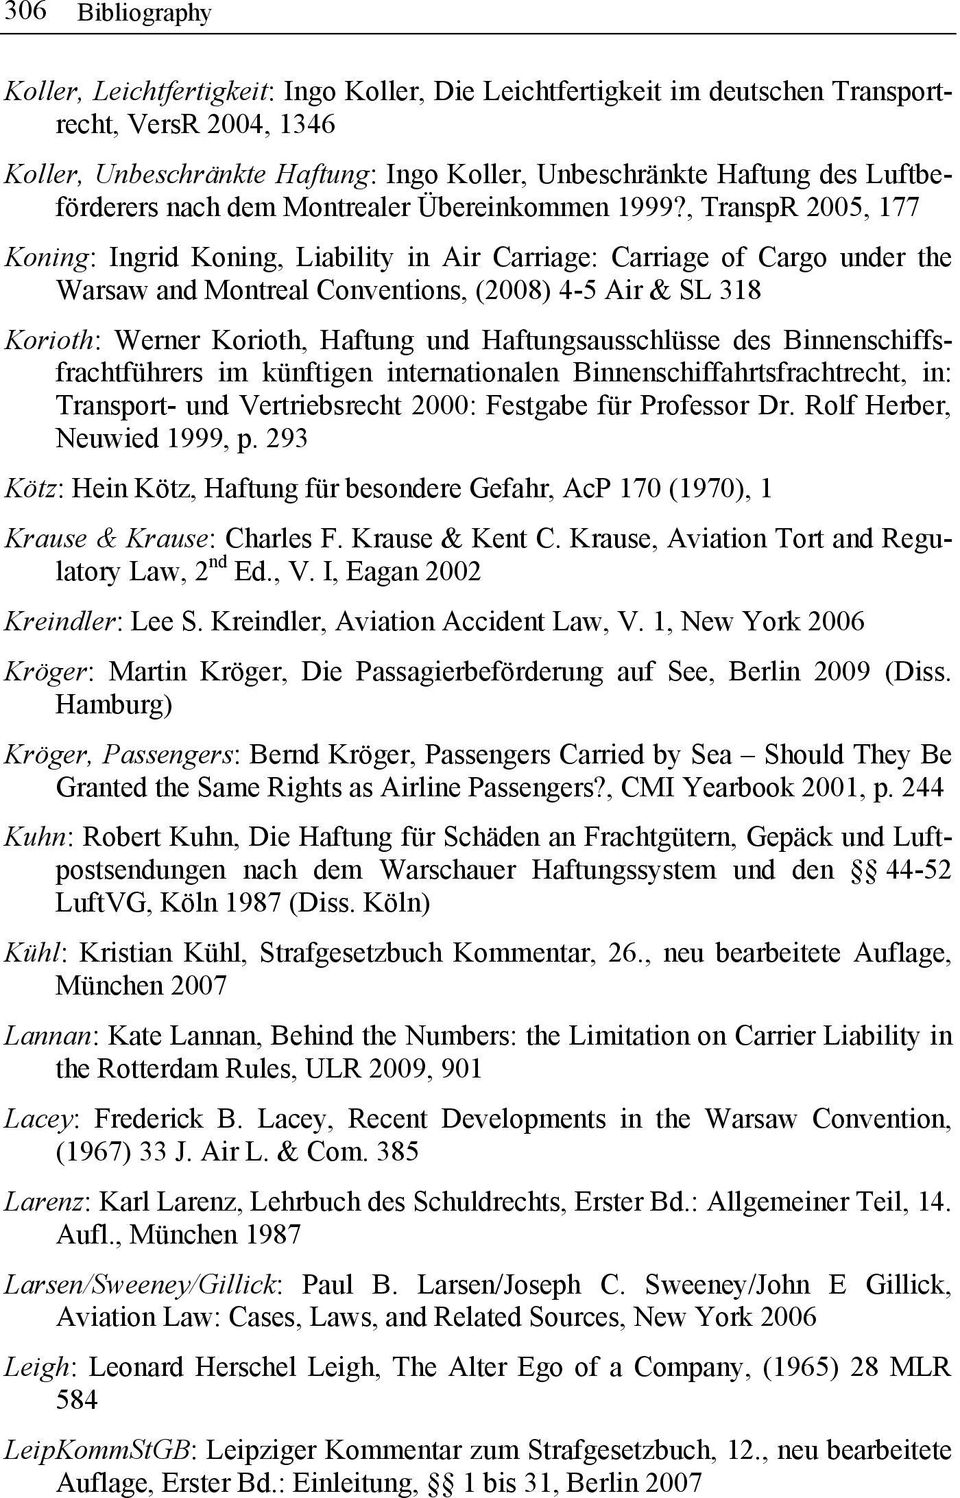 , TranspR 2005, 177 Koning: Ingrid Koning, Liability in Air Carriage: Carriage of Cargo under the Warsaw and Montreal Conventions, (2008) 4-5 Air & SL 318 Korioth: Werner Korioth, Haftung und